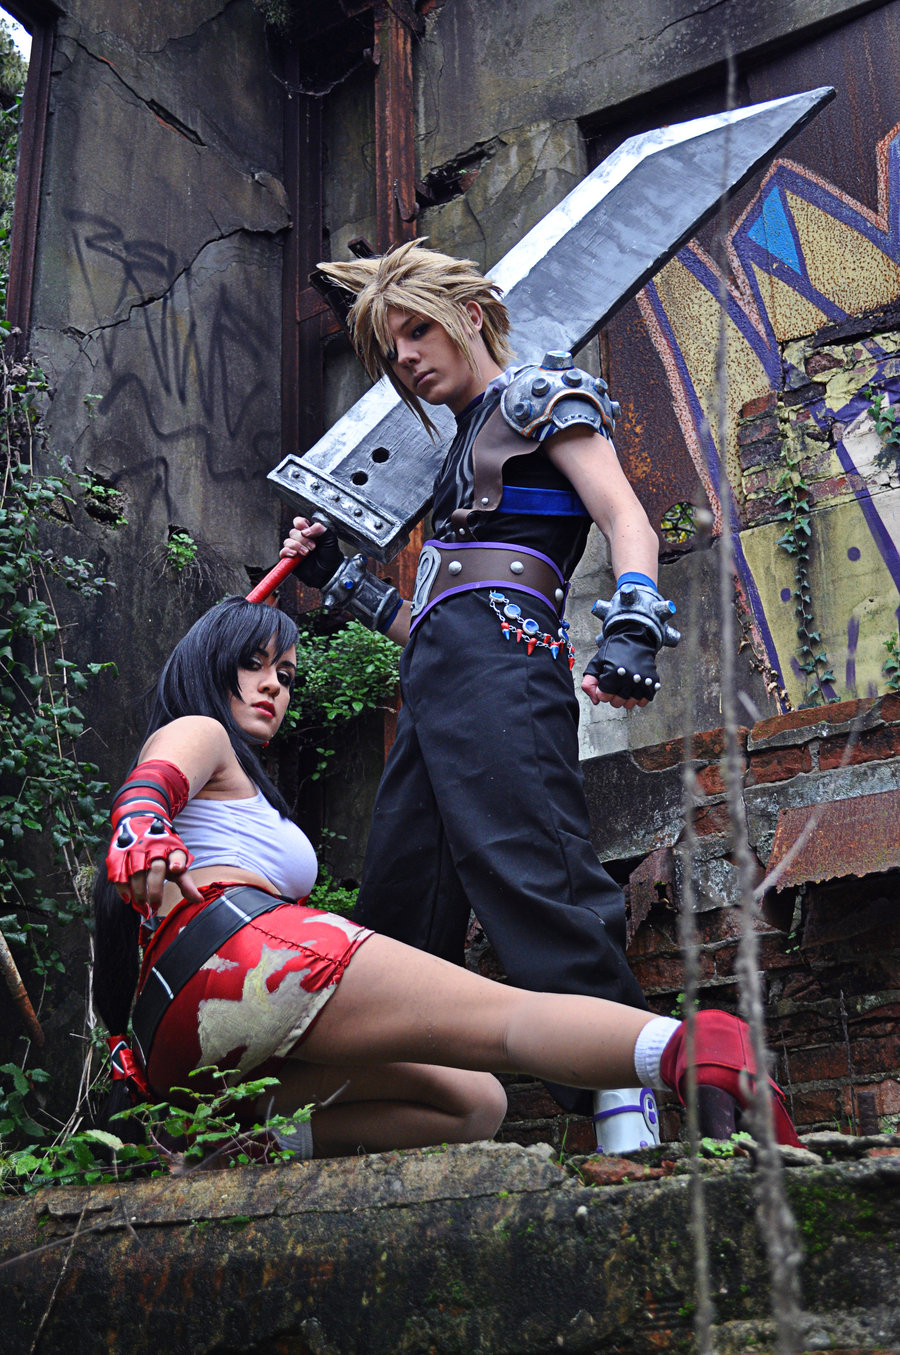 Sascia is Cloud and Ilaria is Tifa | Photo by: Karim Marsili